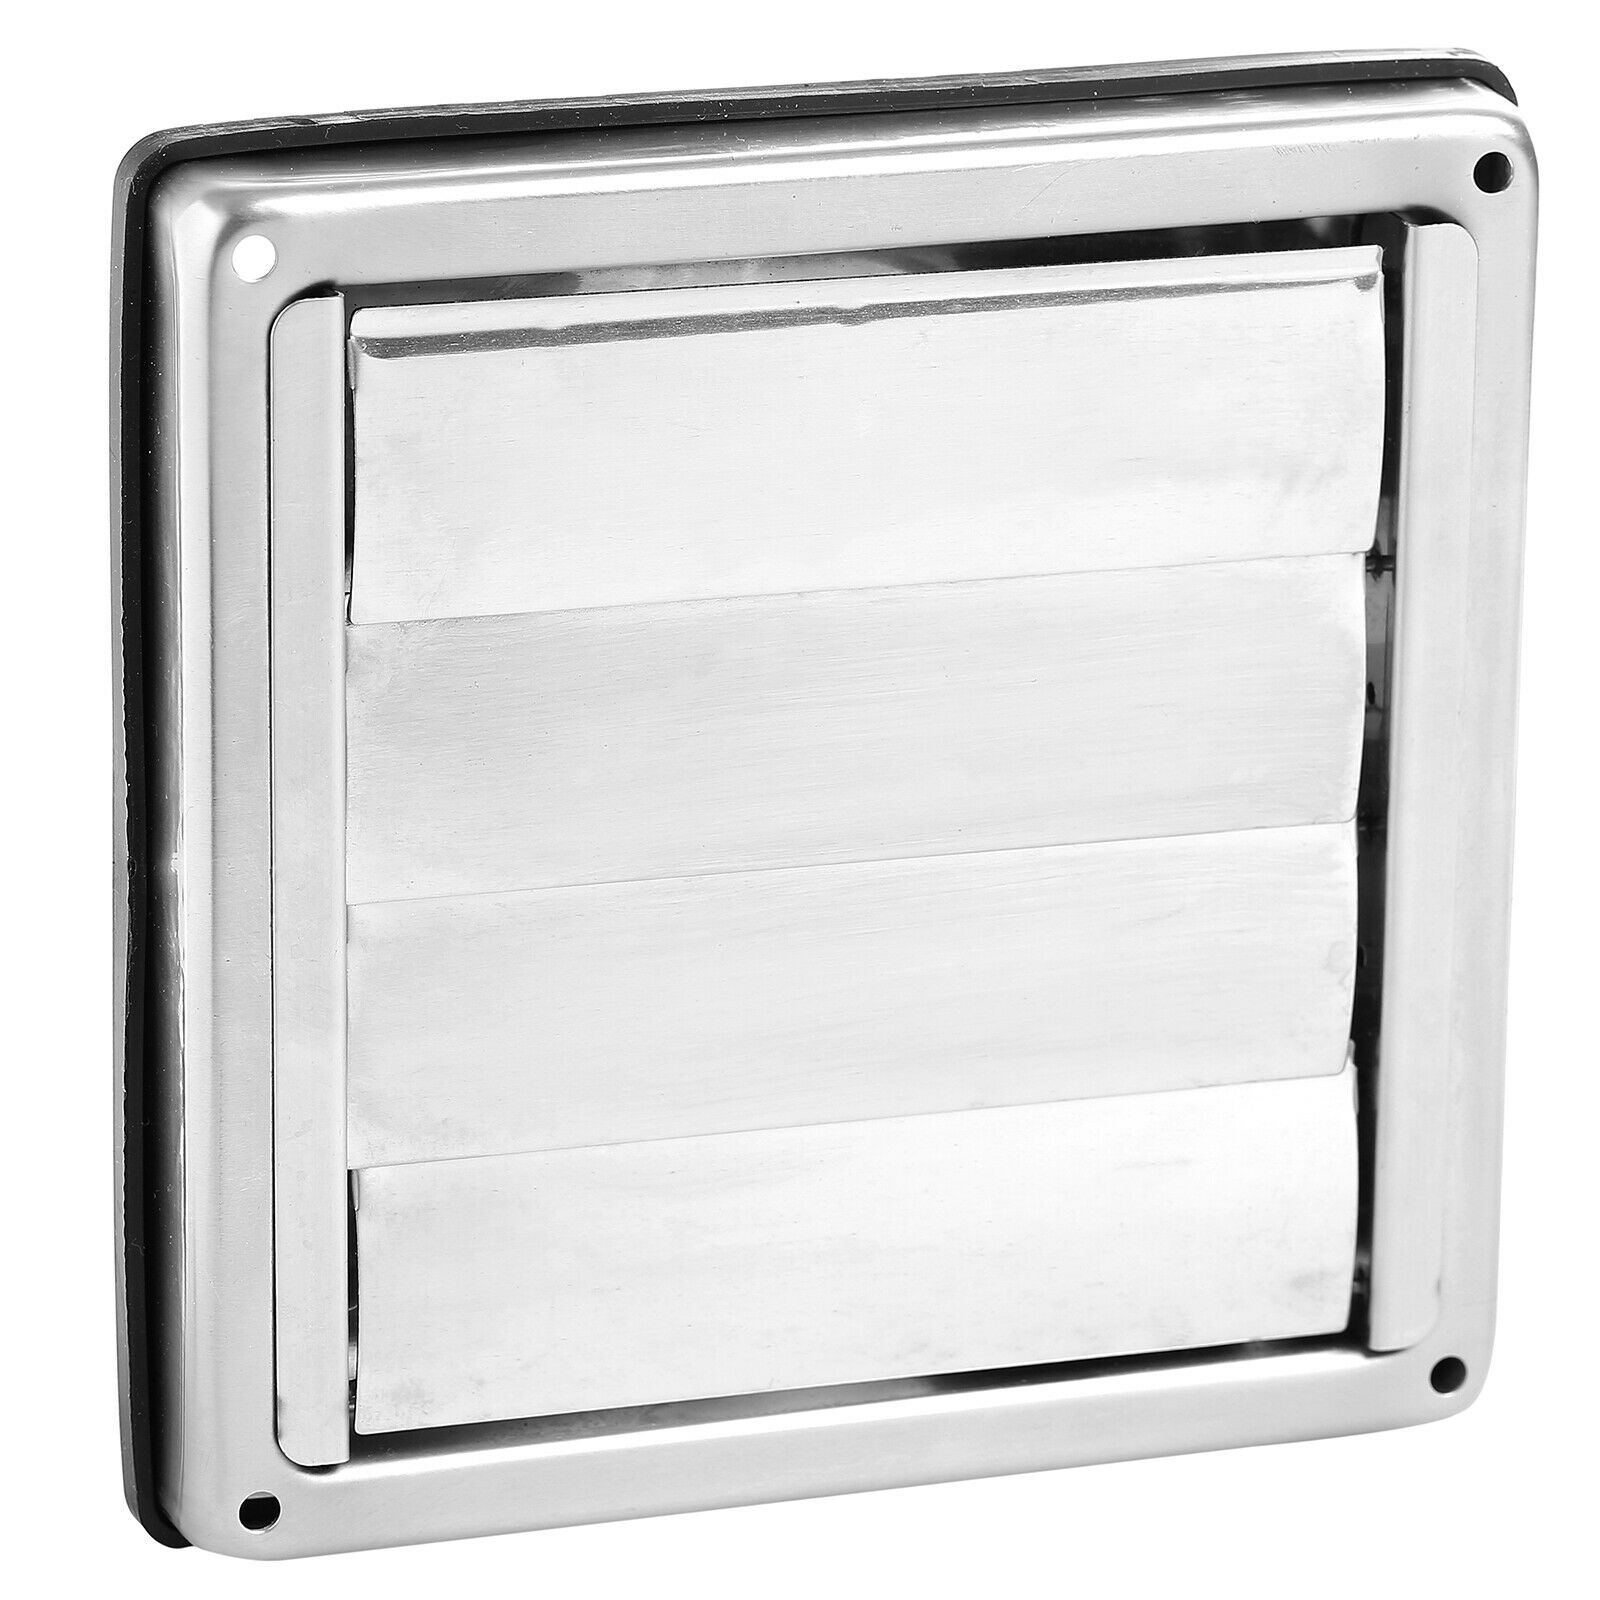 100mm Stainless Steel Wall Air Vent Square Tumble Dryer Extractor Fan